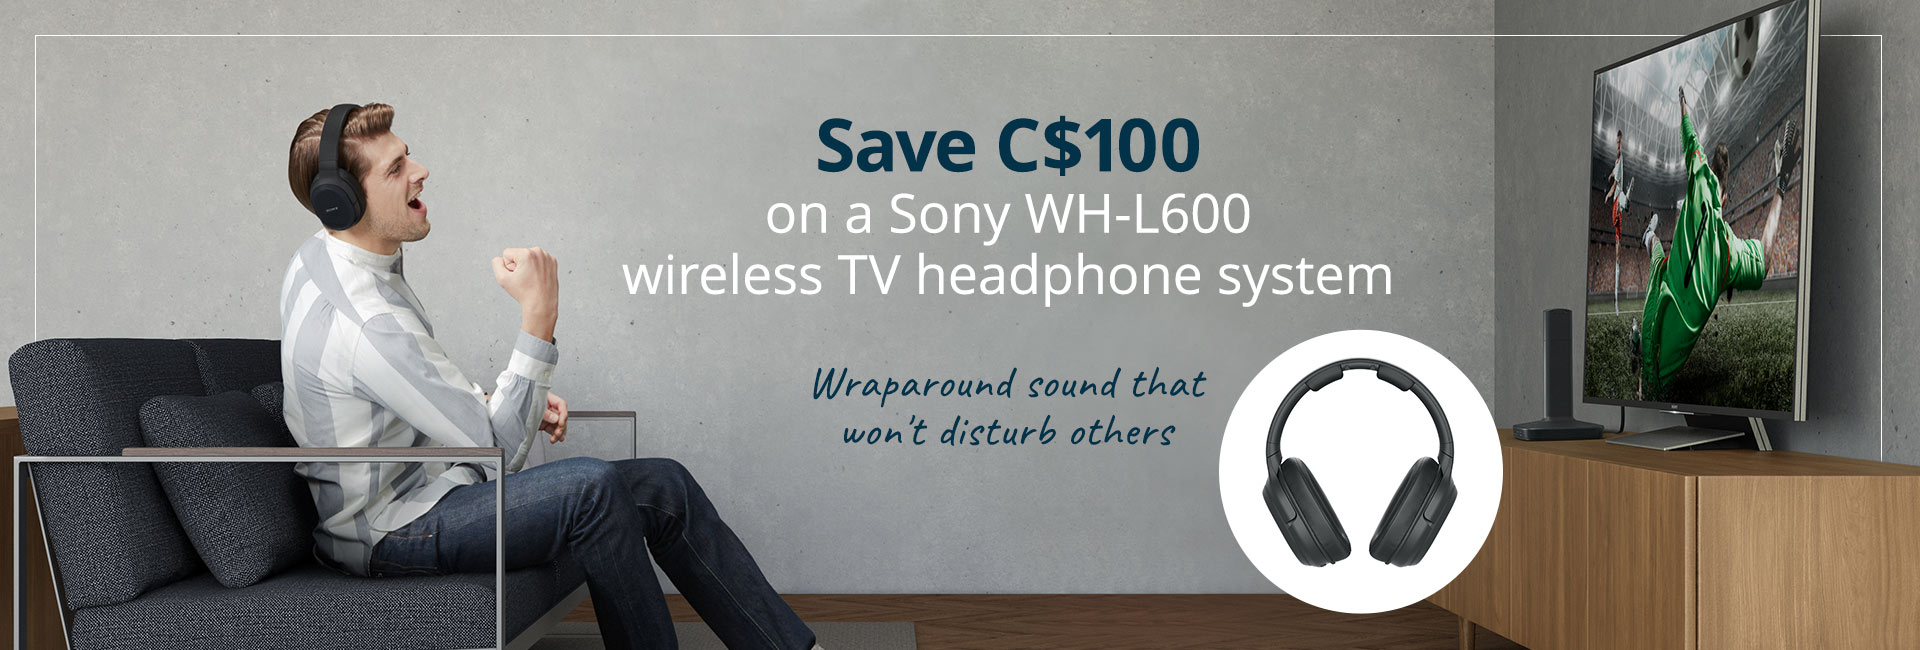 Save C$100 on a Sony WH-L600 wireless TV headphone system